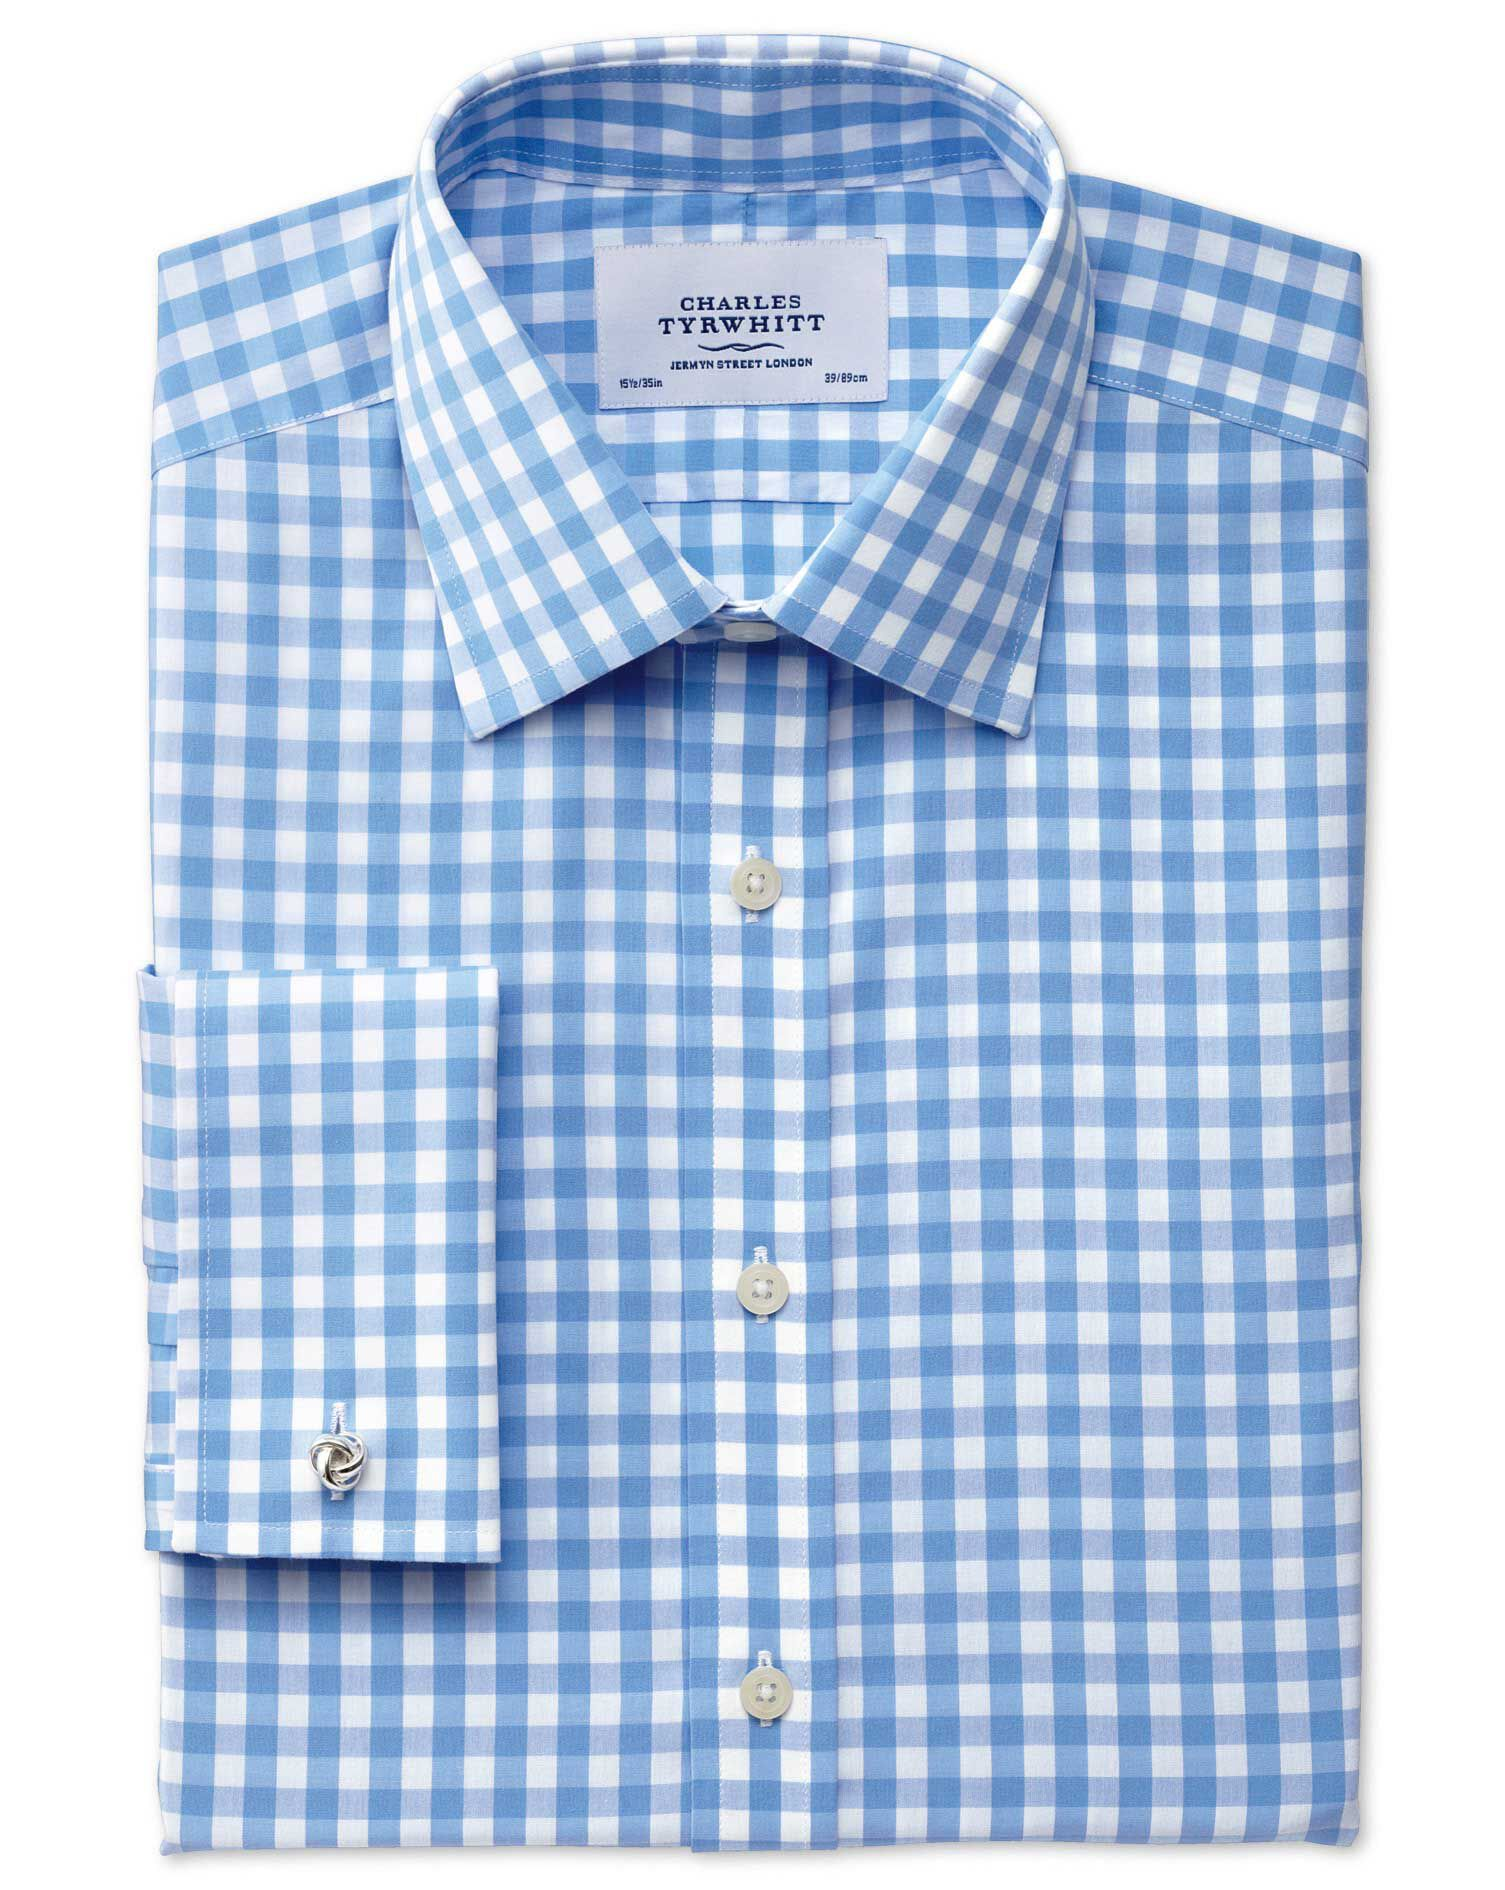 Slim Fit Non-Iron Gingham Sky Blue Cotton Formal Shirt Single Cuff Size 16/36 by Charles Tyrwhitt